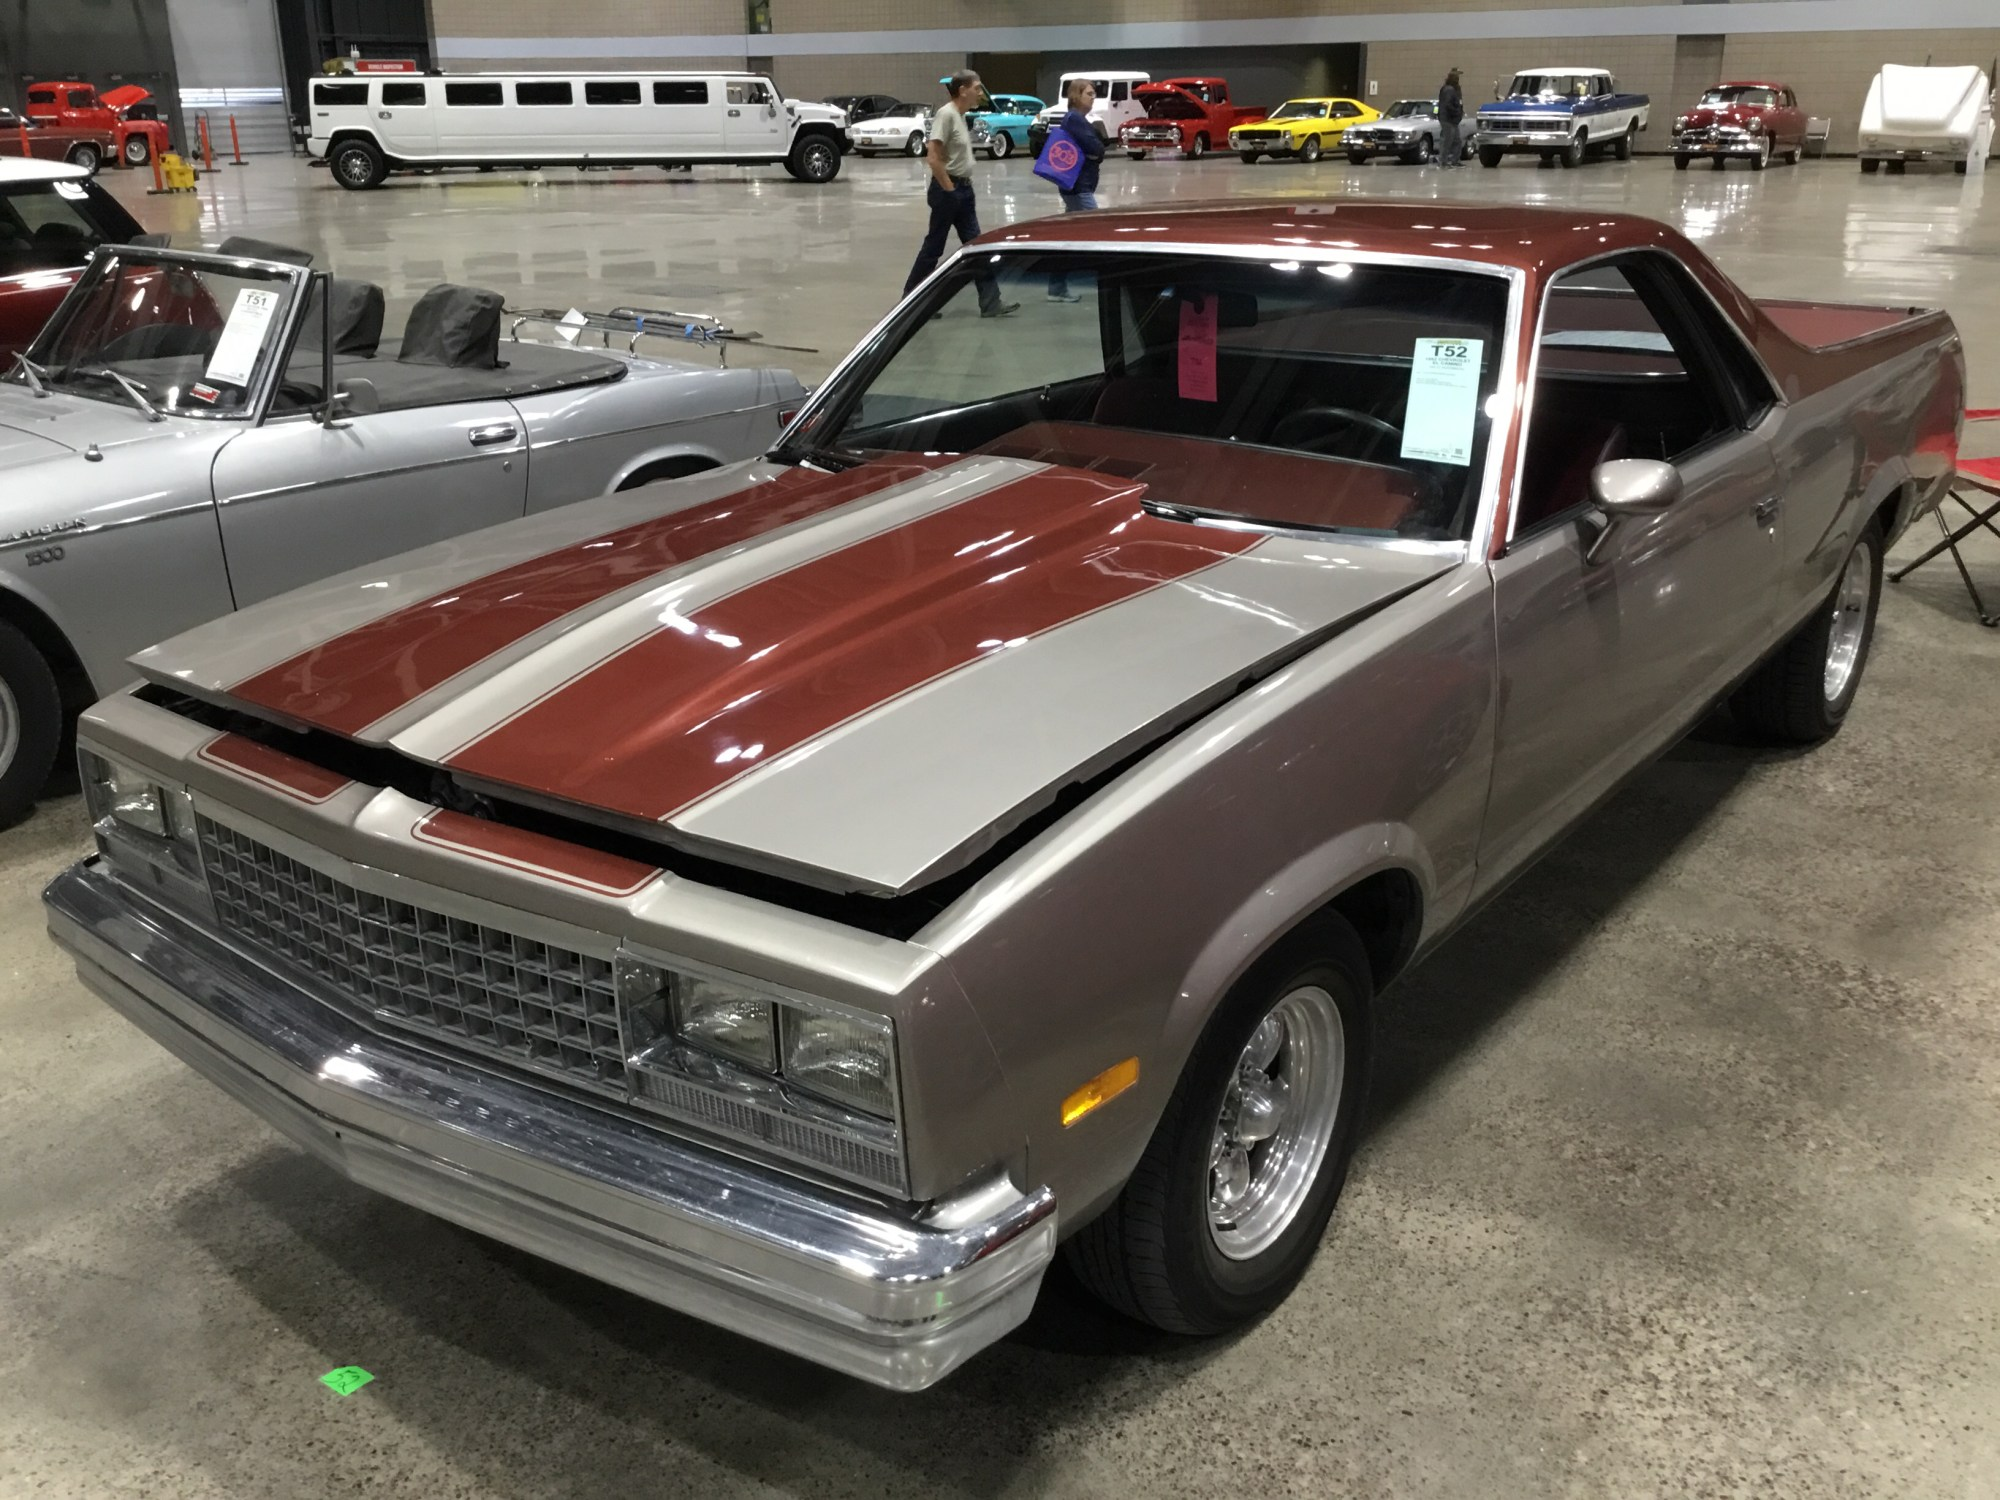 hight resolution of 1982 chevrolet el camino 1 2 ton pickup 6 cyl 231cid 110hp 2bbl ohv